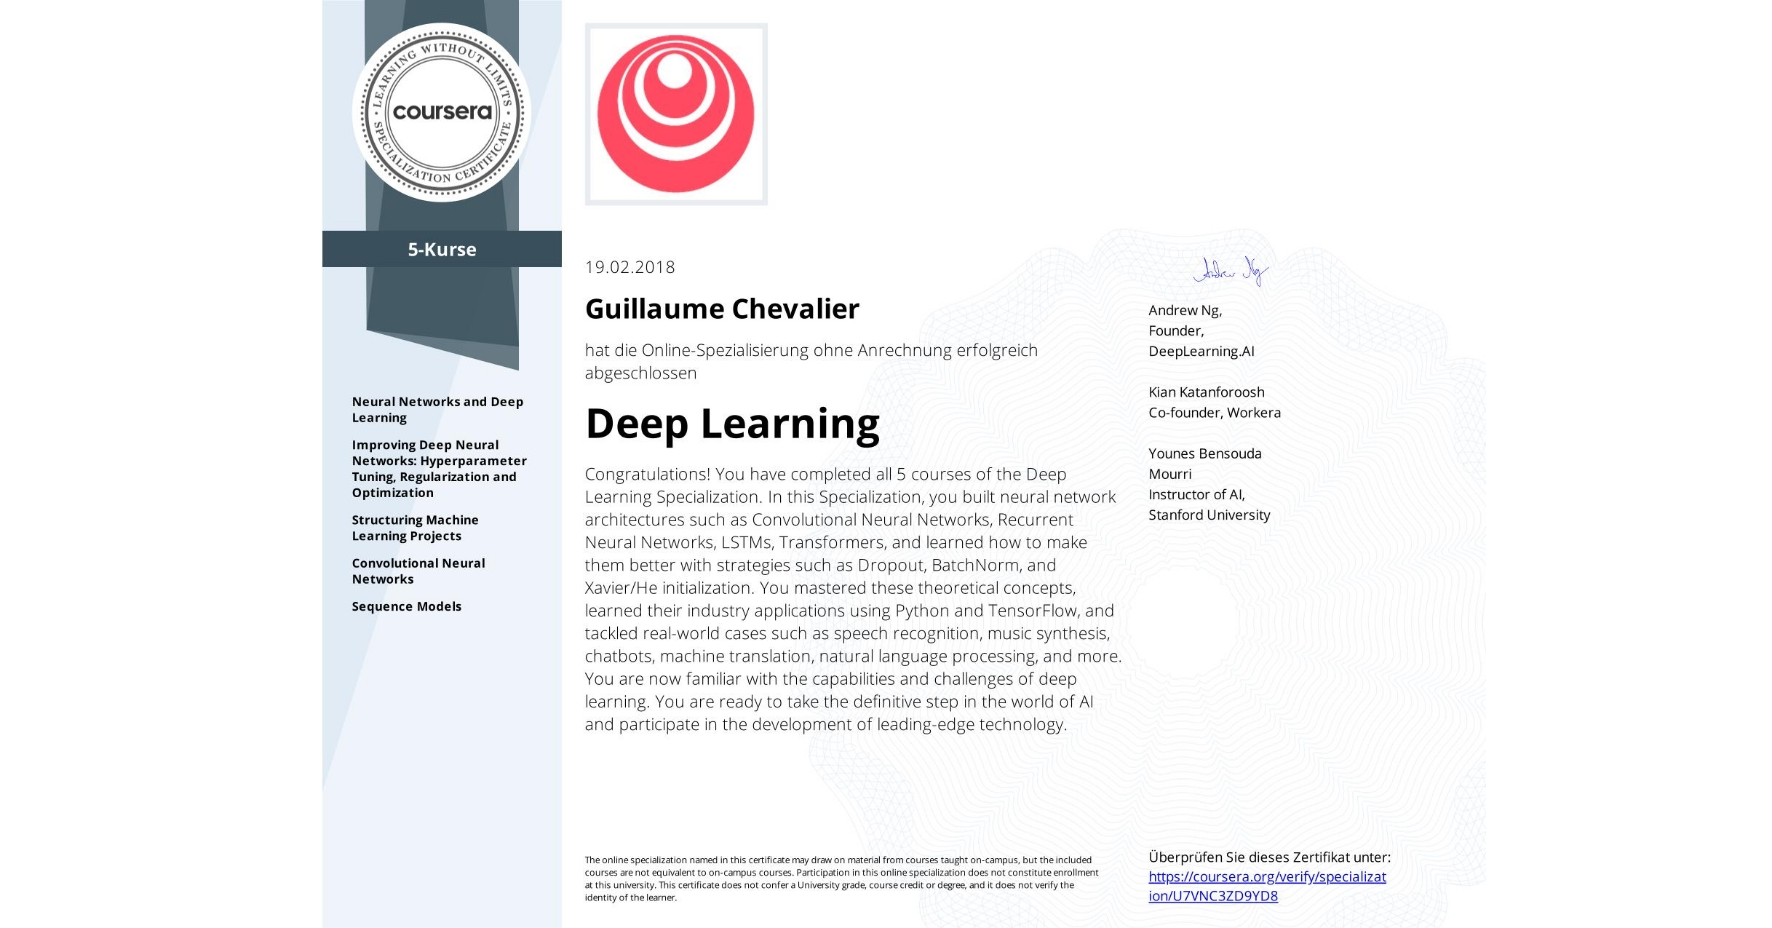 View certificate for Guillaume Chevalier, Deep Learning, offered through Coursera. Congratulations! You have completed all 5 courses of the Deep Learning Specialization.  In this Specialization, you built neural network architectures such as Convolutional Neural Networks, Recurrent Neural Networks, LSTMs, Transformers, and learned how to make them better with strategies such as Dropout, BatchNorm, and Xavier/He initialization. You mastered these theoretical concepts, learned their industry applications using Python and TensorFlow, and tackled real-world cases such as speech recognition, music synthesis, chatbots, machine translation, natural language processing, and more.  You are now familiar with the capabilities and challenges of deep learning. You are ready to take the definitive step in the world of AI and participate in the development of leading-edge technology.